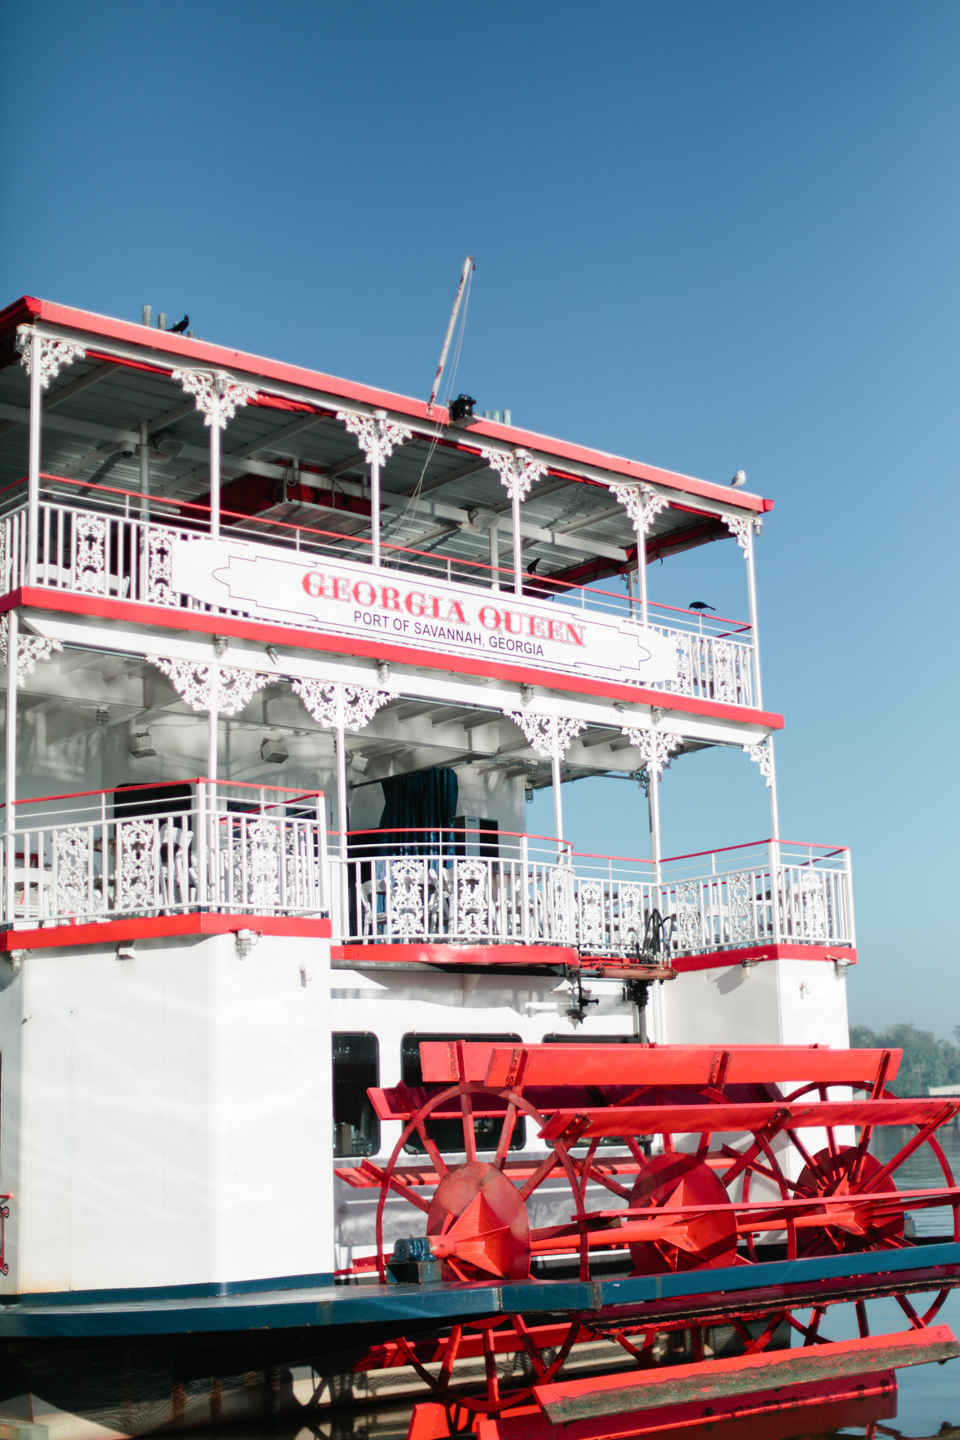 Picture of a white and red riverboat docked on East River Street in historic downtown Savannah, Georgia.